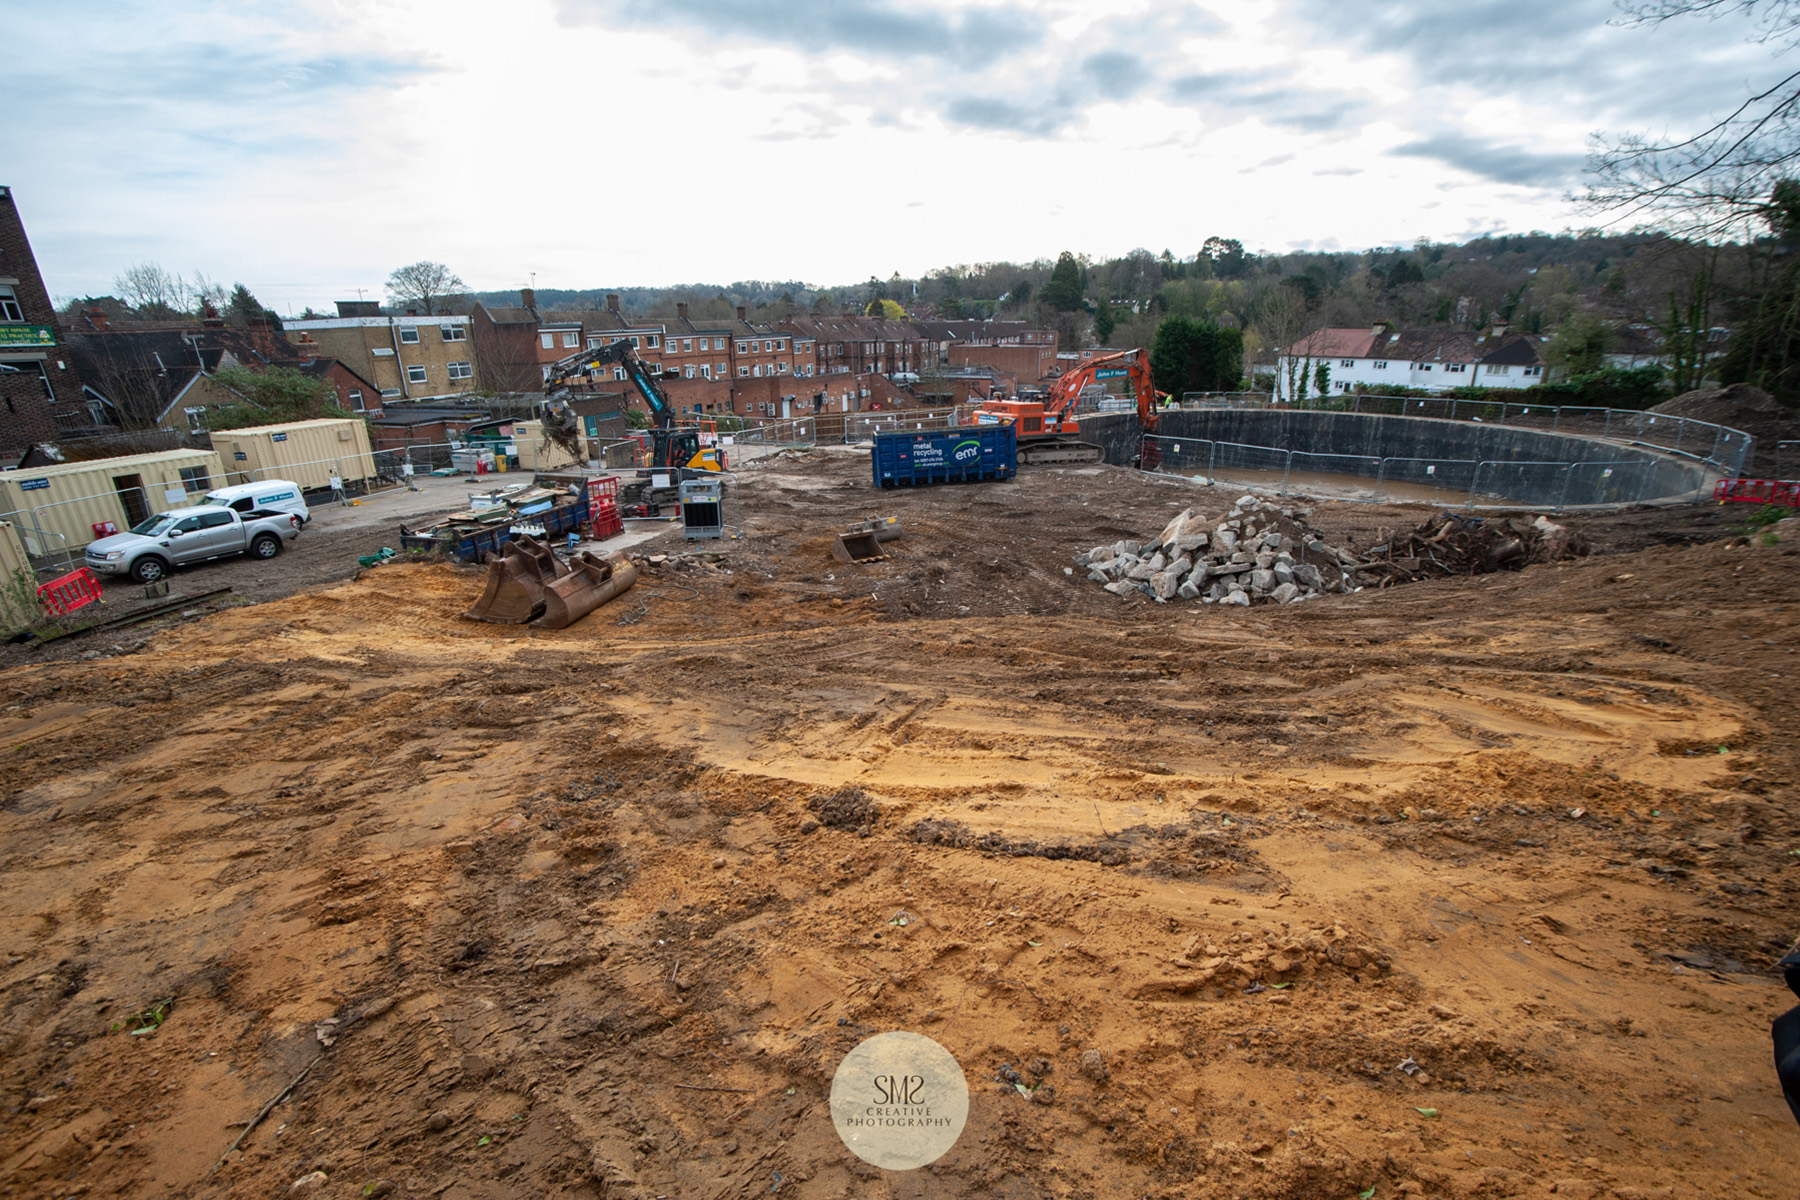 The site is vast, I felt privileged to be given access to capture images like this one. The pieces of steel that fell in the pit are almost cleared.